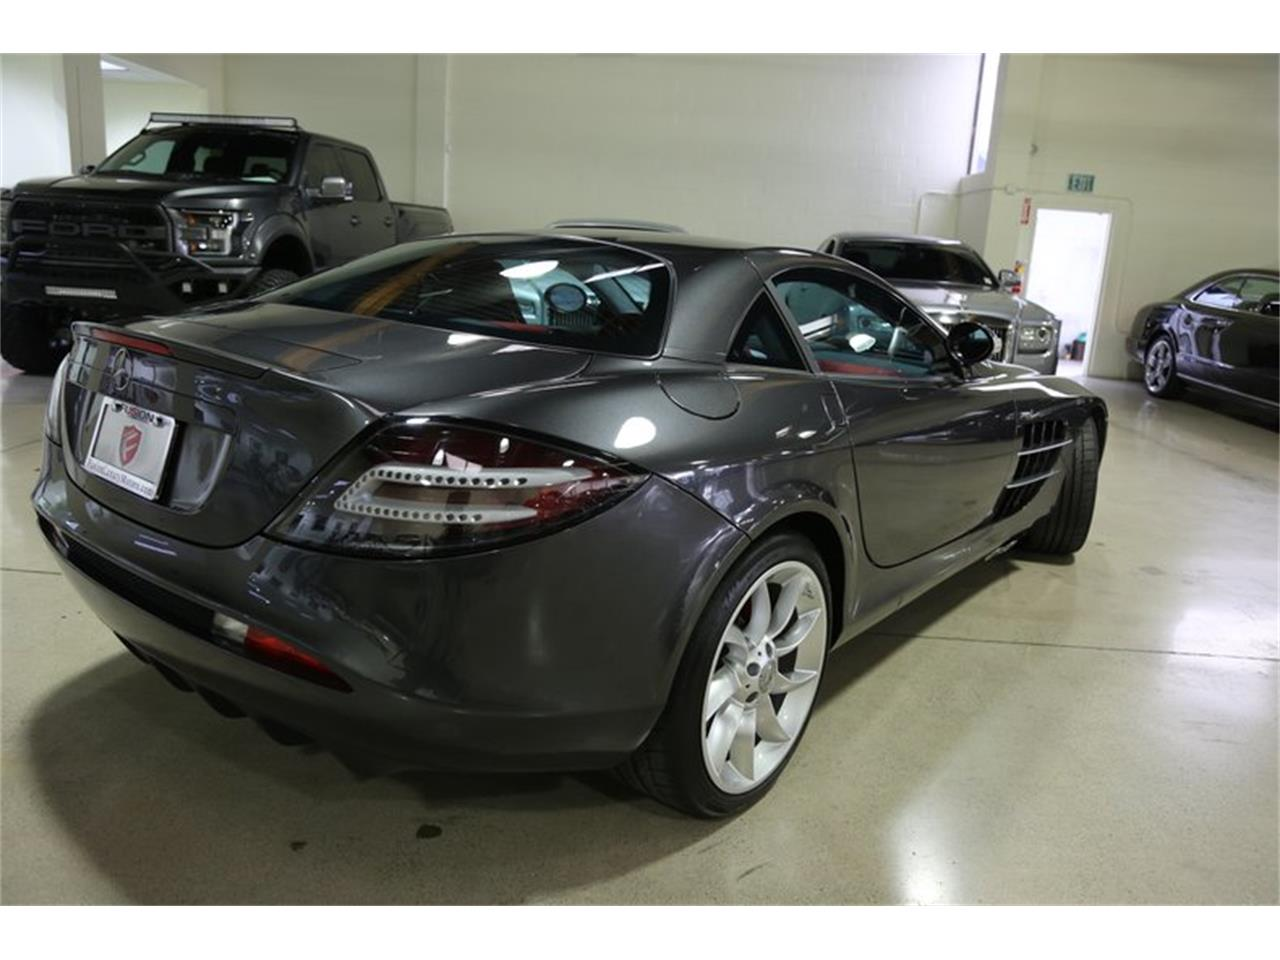 For Sale 2006 Mercedes Benz Slr Mclaren In Chatsworth California